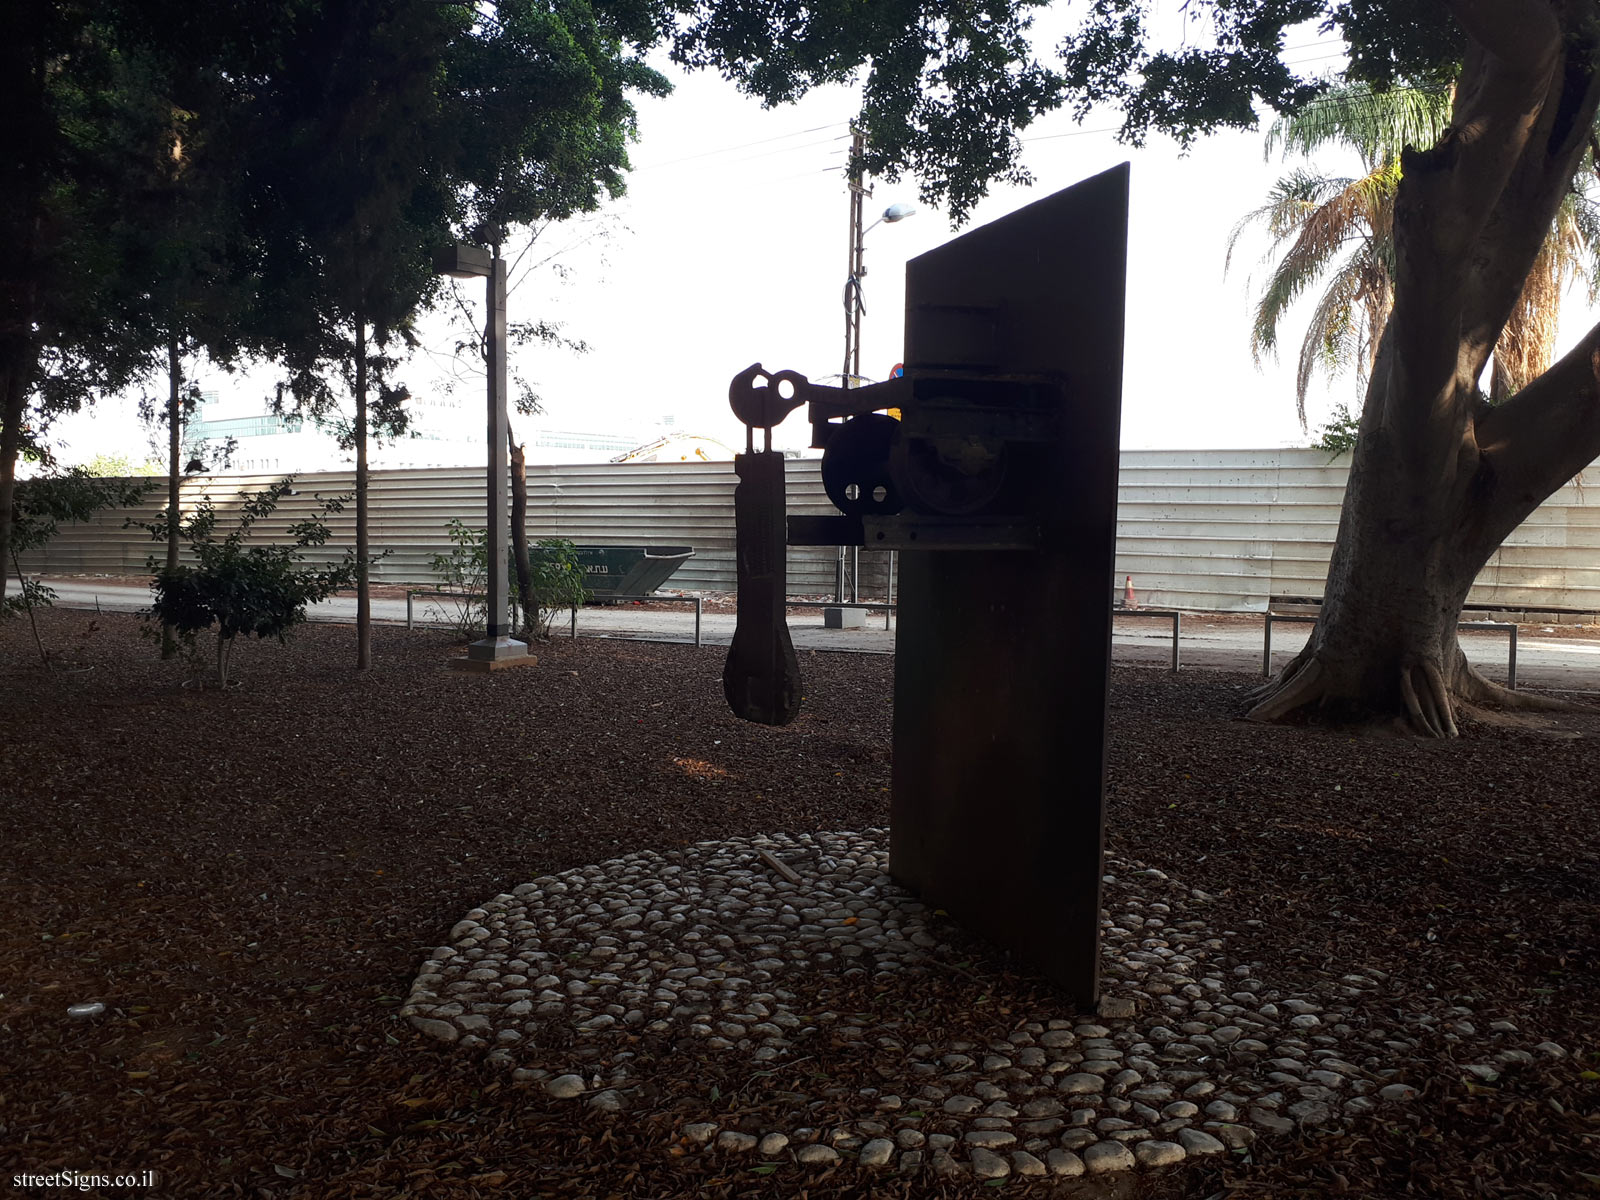 Tel Aviv - Tomarkin sculptures at Abu Nabot Park - Memory of the Future (for Walter Benjamin)